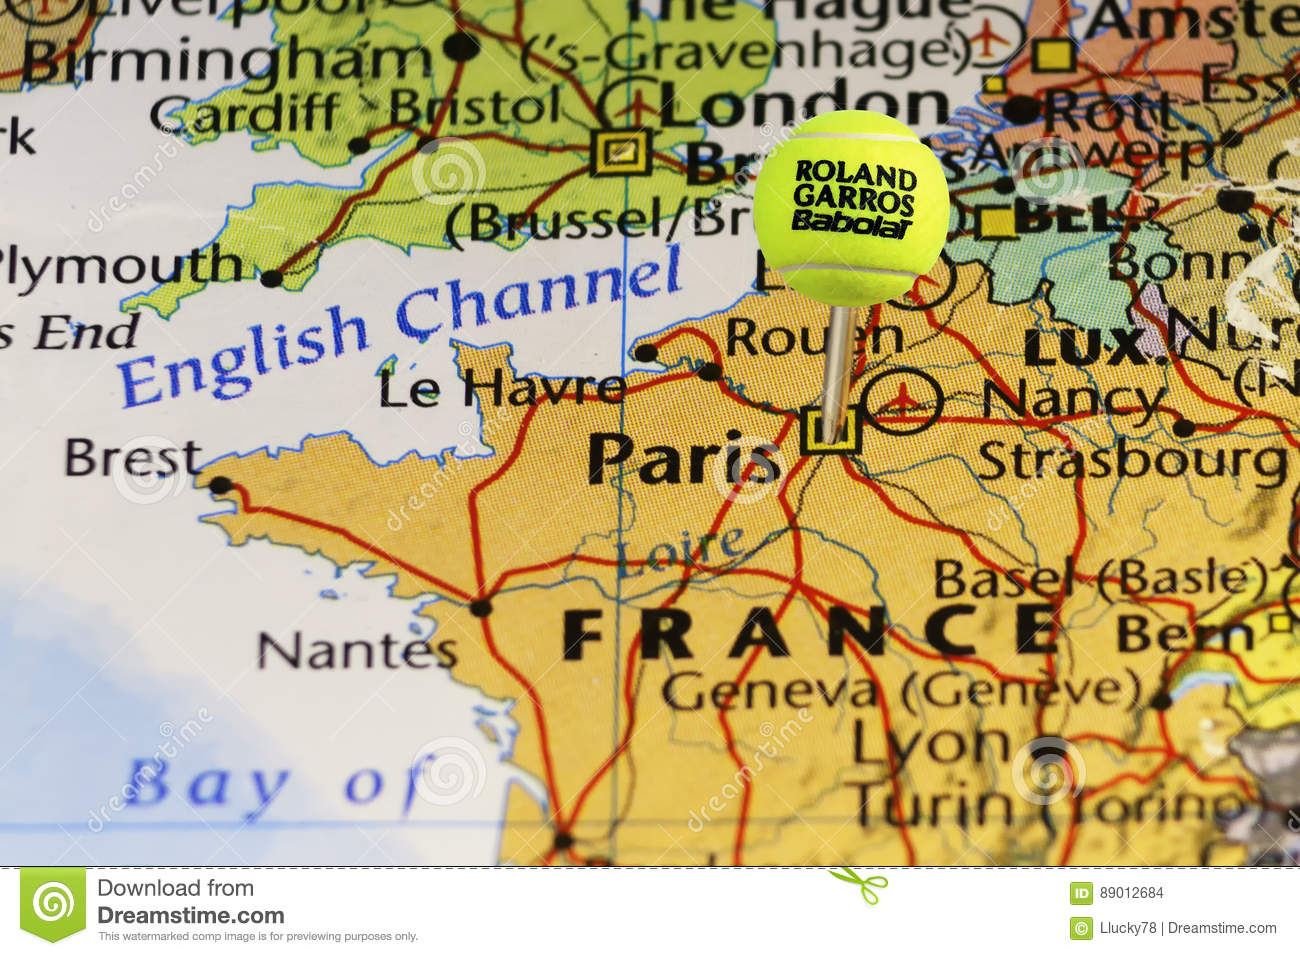 Map Of France Nancy.2016 Roland Garros Official Tennis Ball As Pin On Map Of France